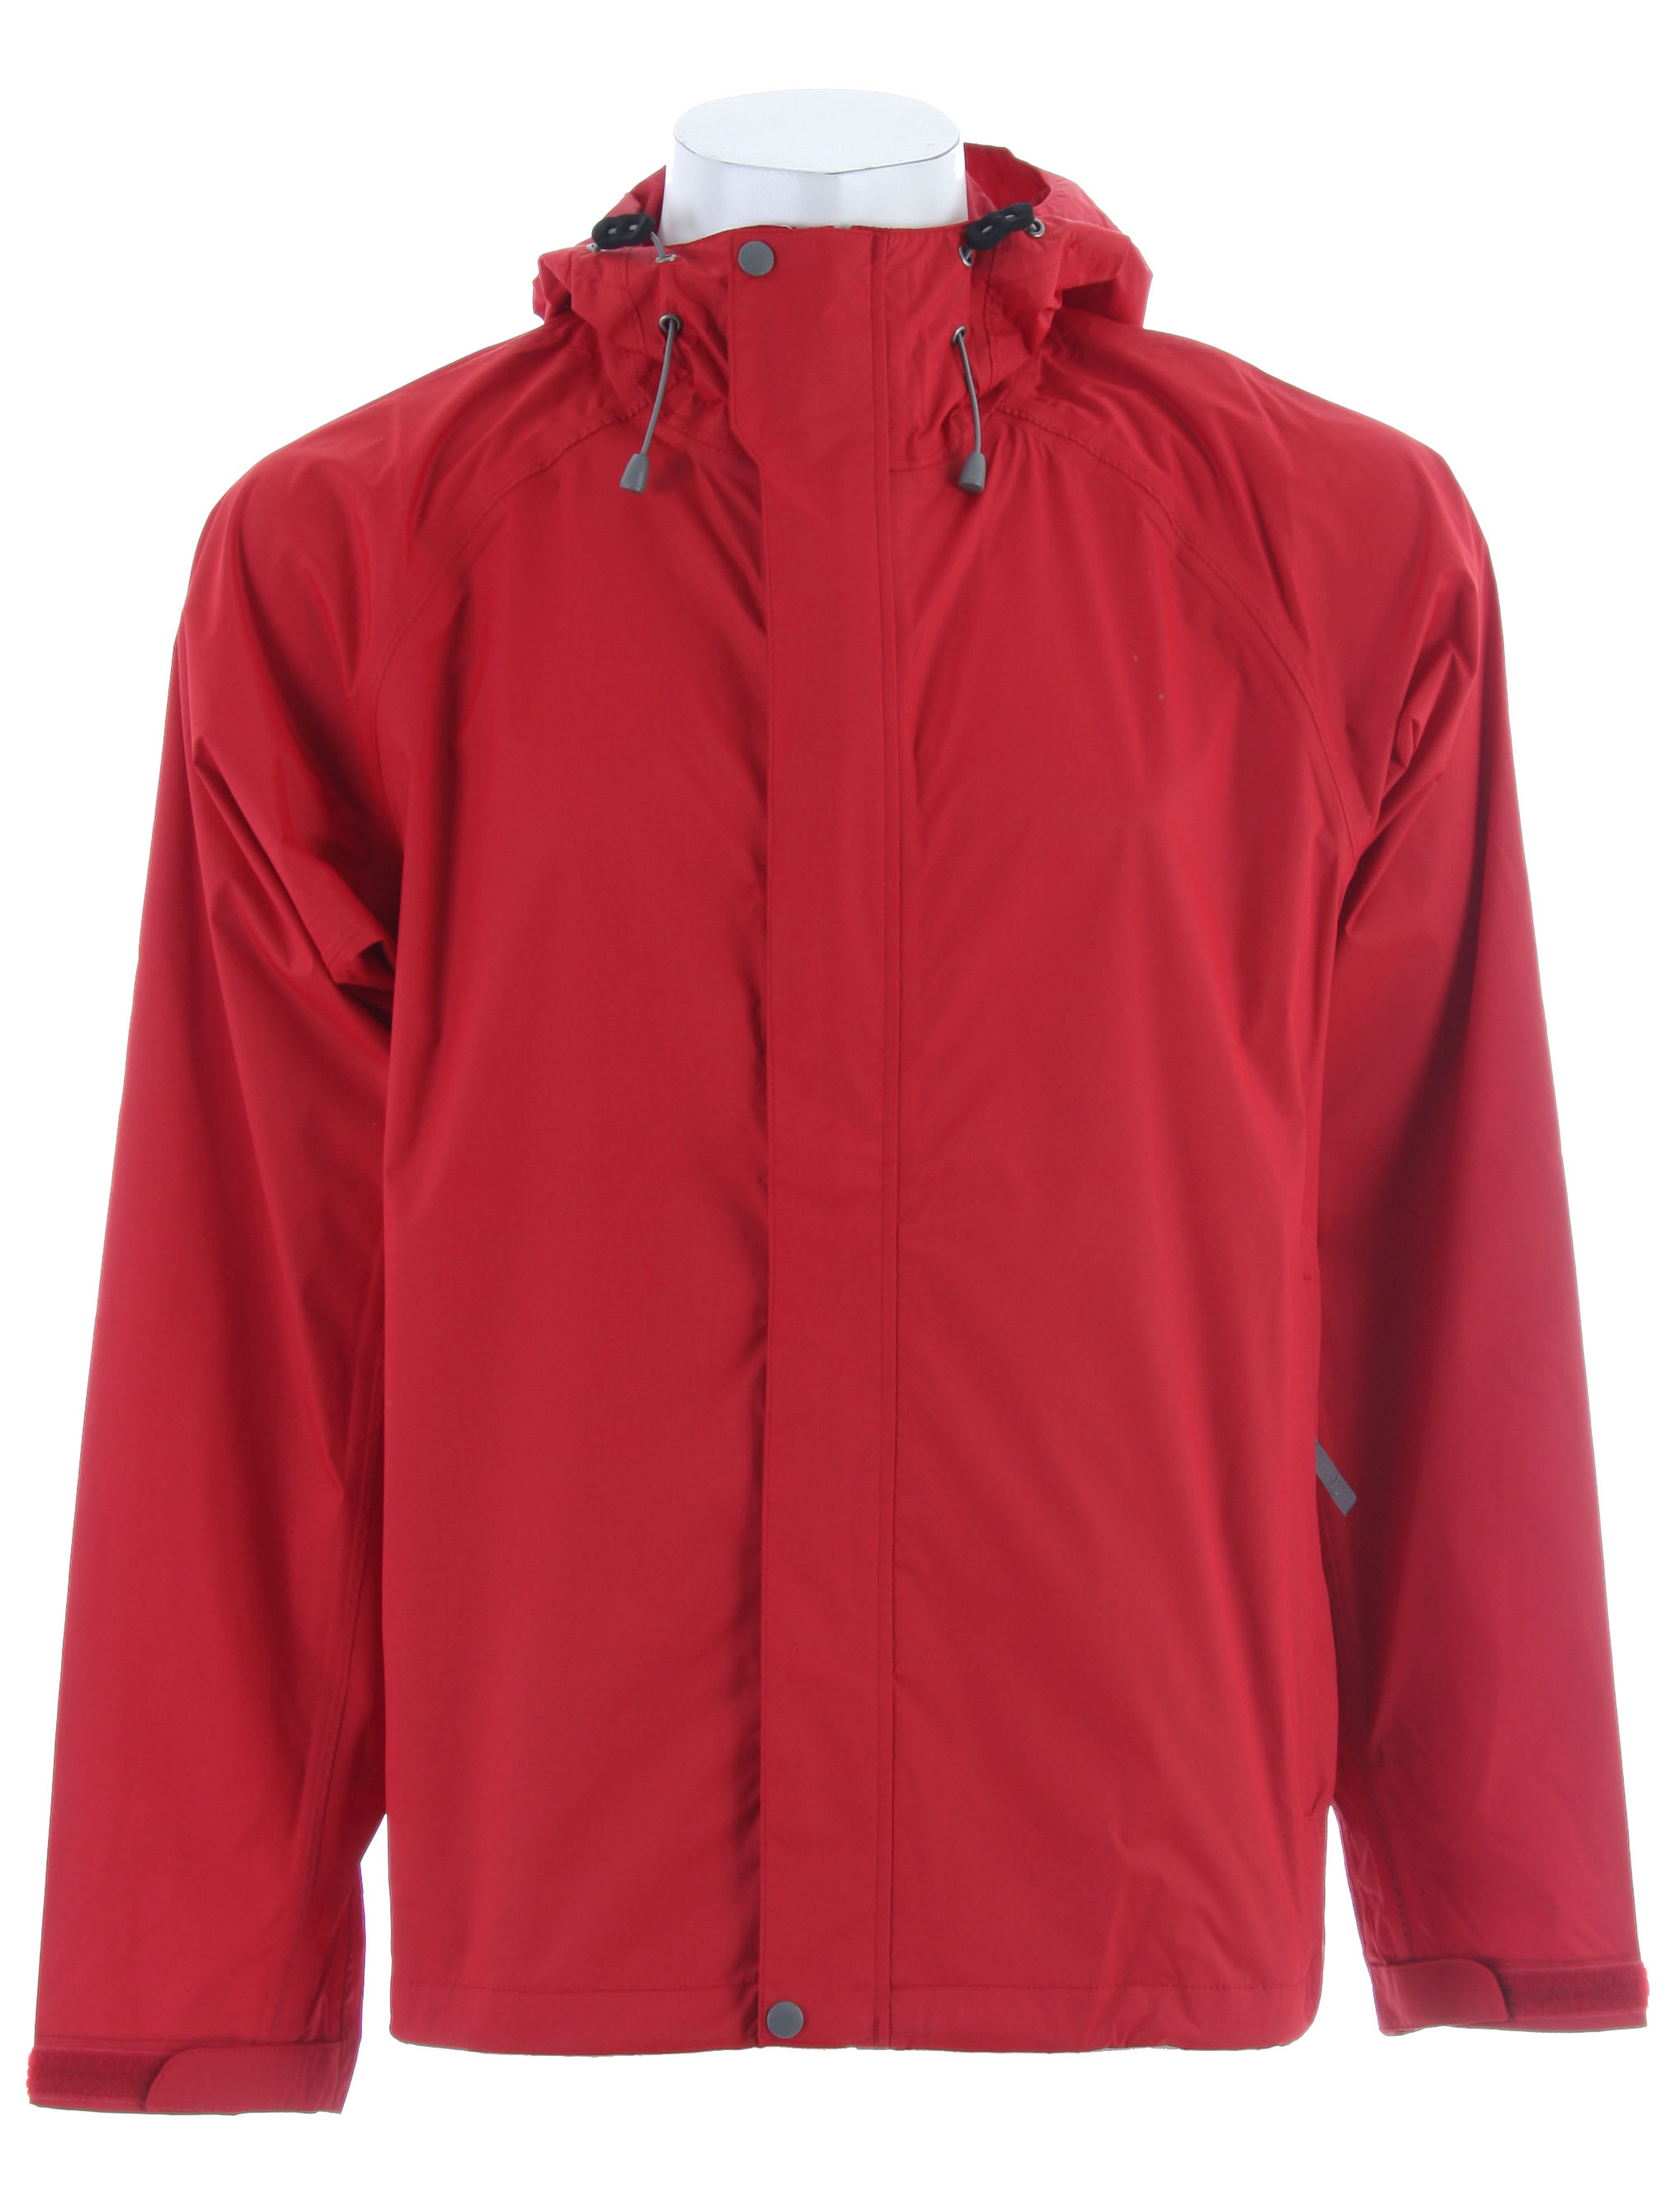 Shop for White Sierra Trabagon Rain Jacket Deep Red - Men's